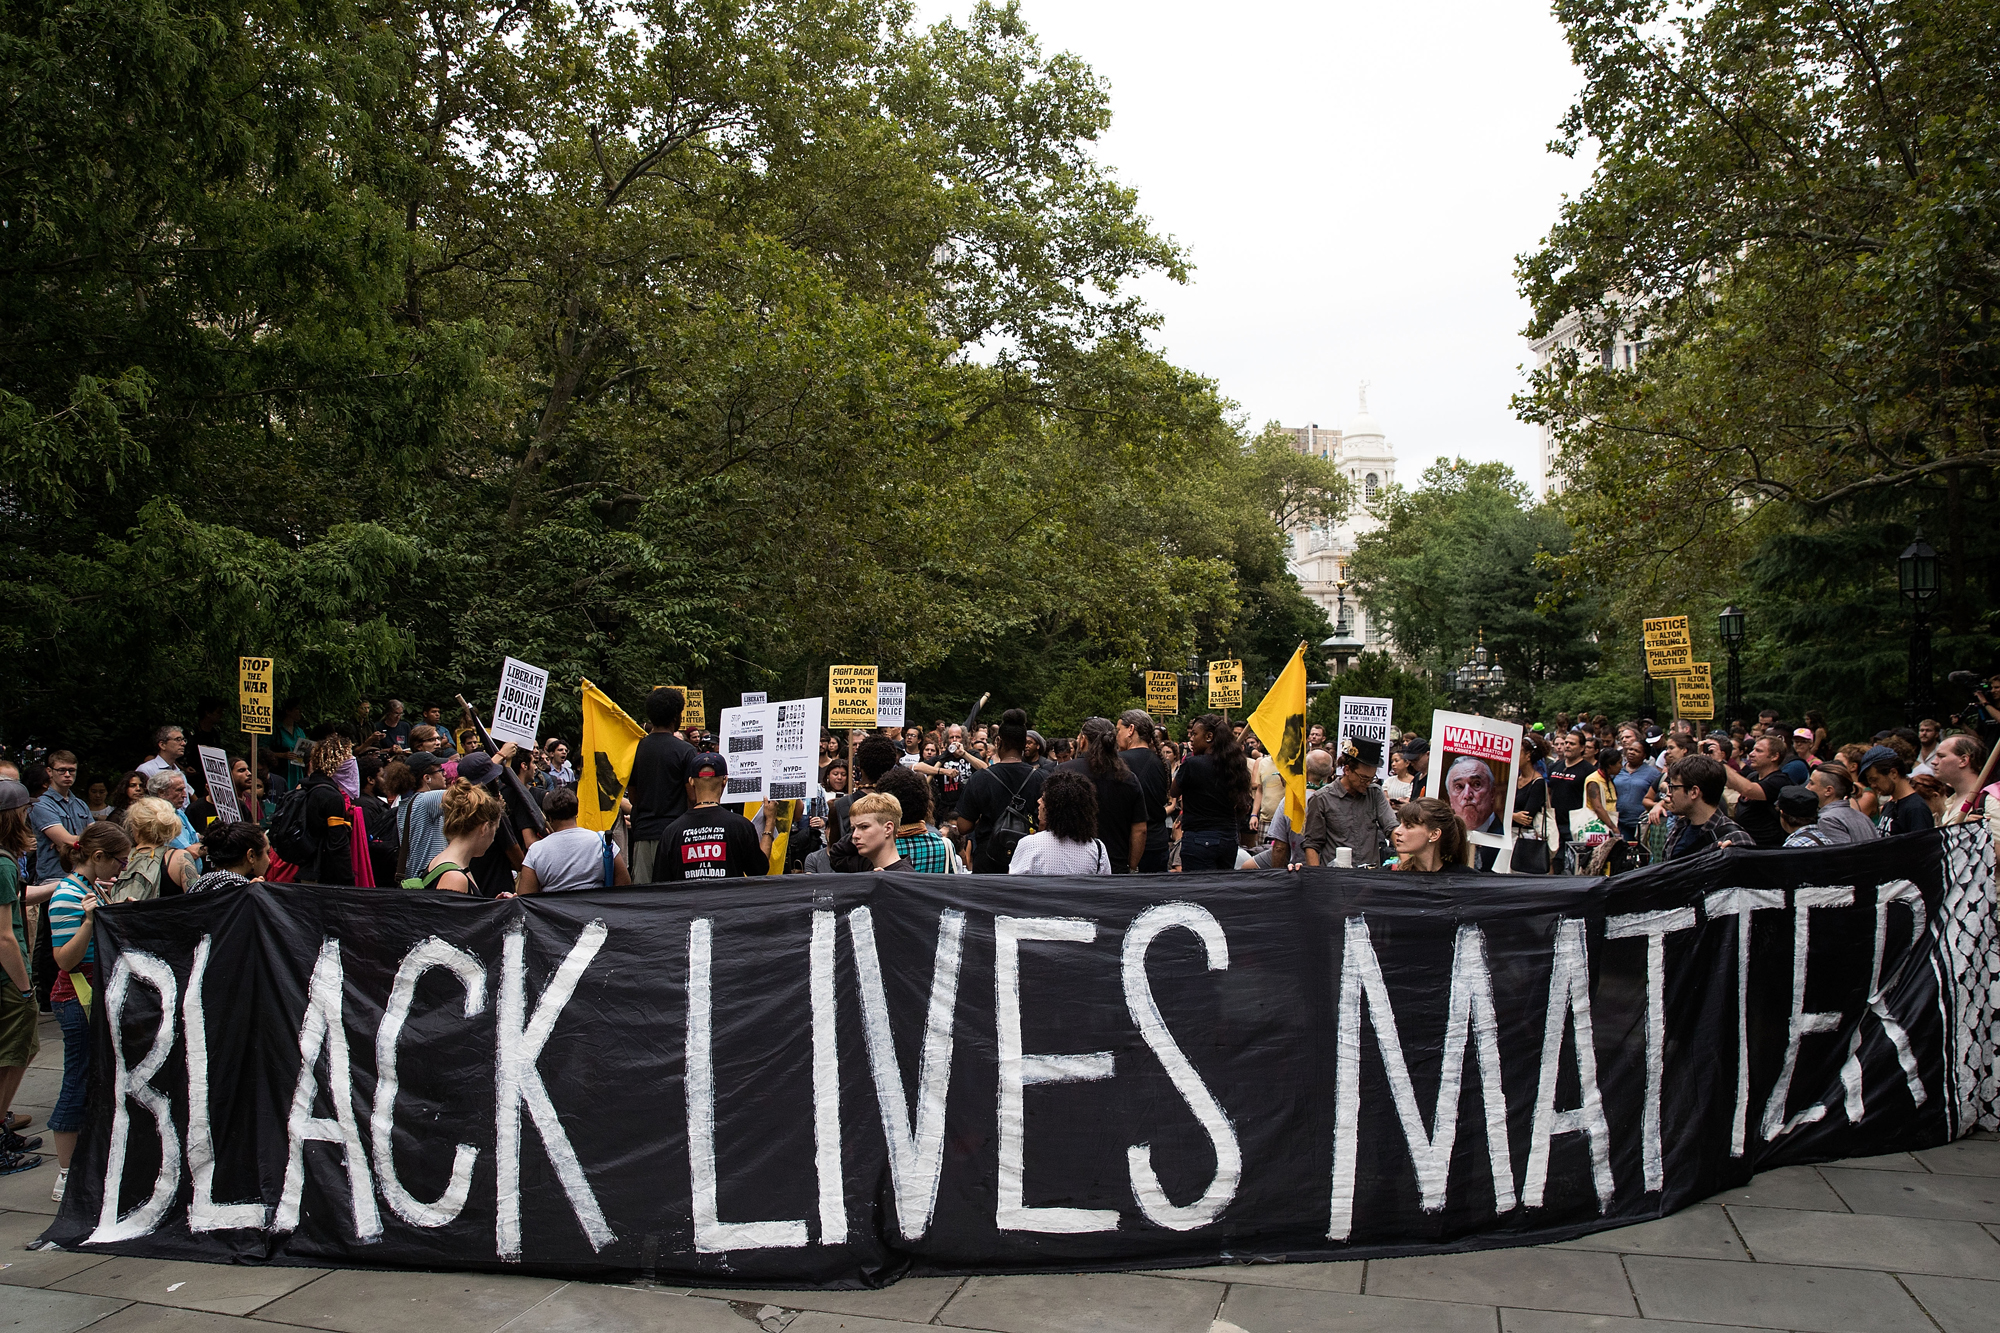 Protestors rally during a protest against police brutality at City Hall Park, August 1, 2016 in New York City.